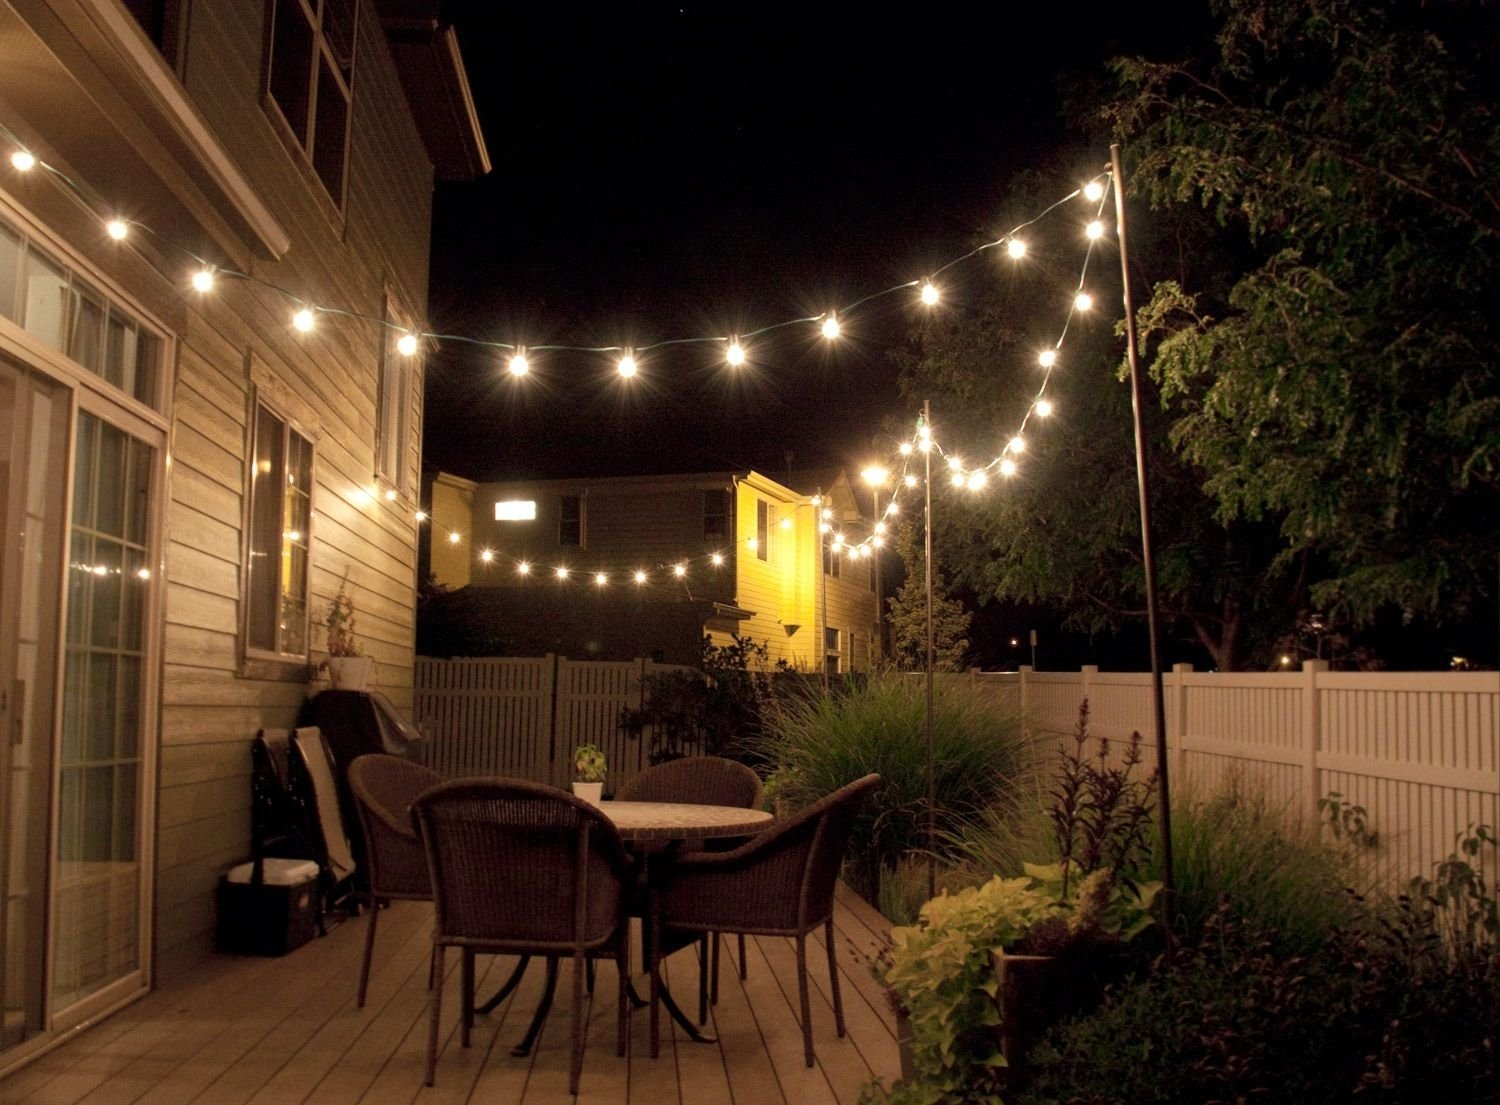 10 Amazing Outdoor Lighting Ideas For Patios how to make inexpensive poles to hang string lights on cafe style 2020